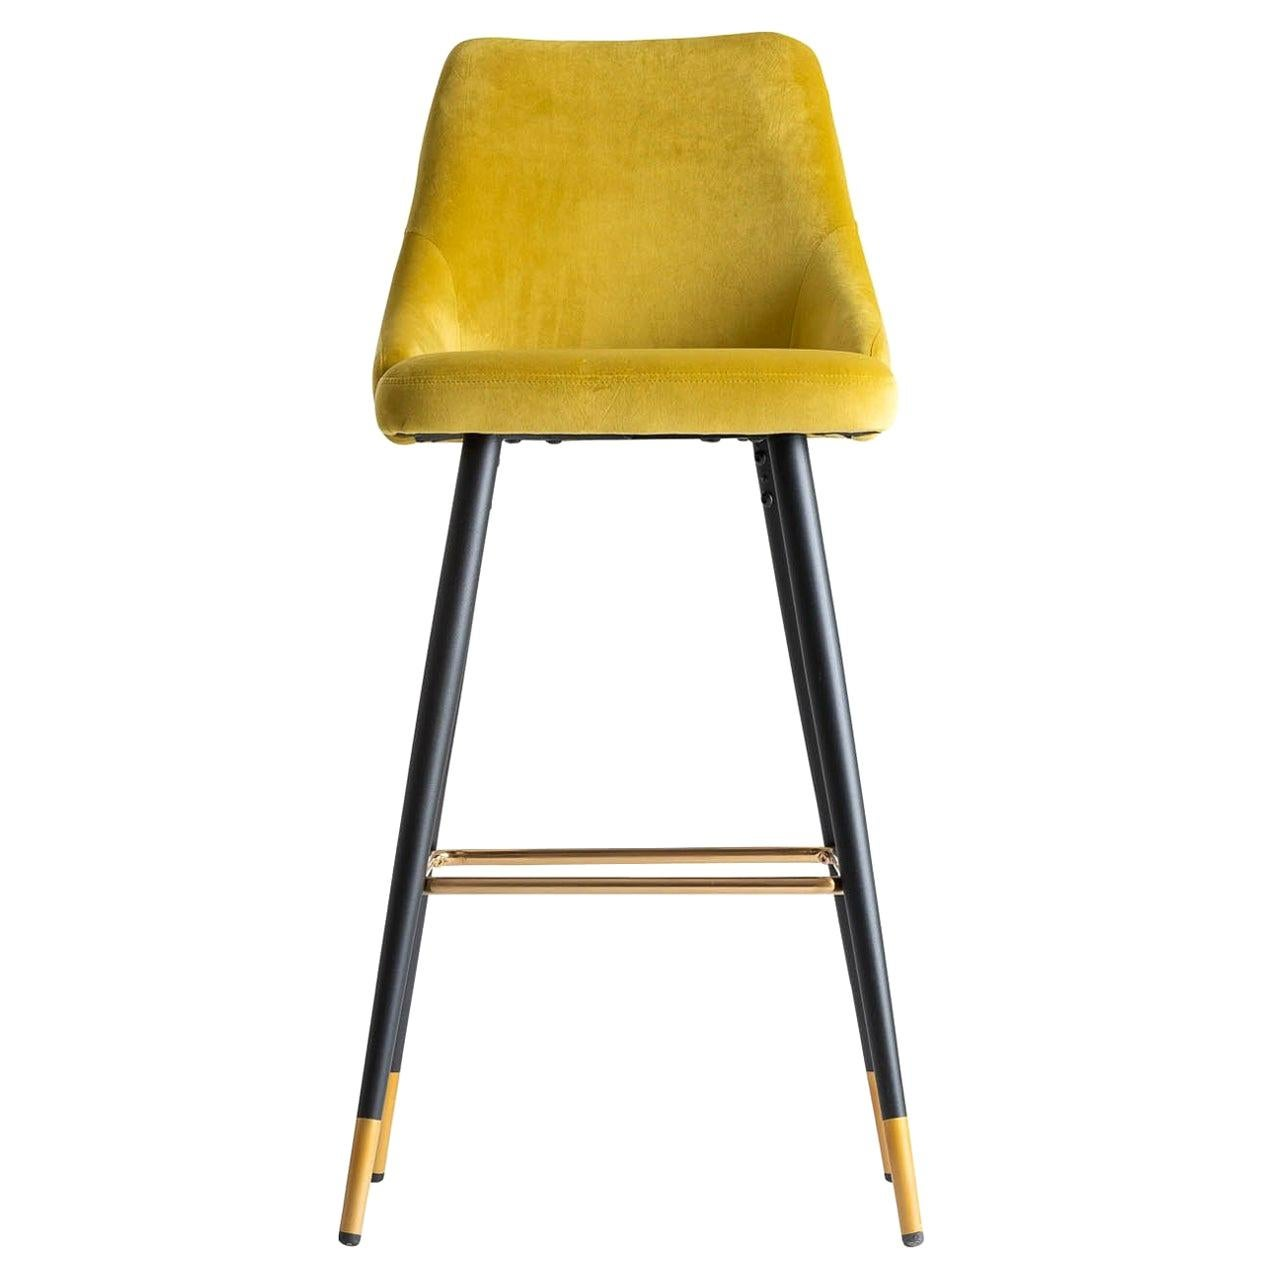 Art Deco Style Yellow Mustard Velvet And Black Lacquered Metal Feet Bar Stool For Sale At 1stdibs